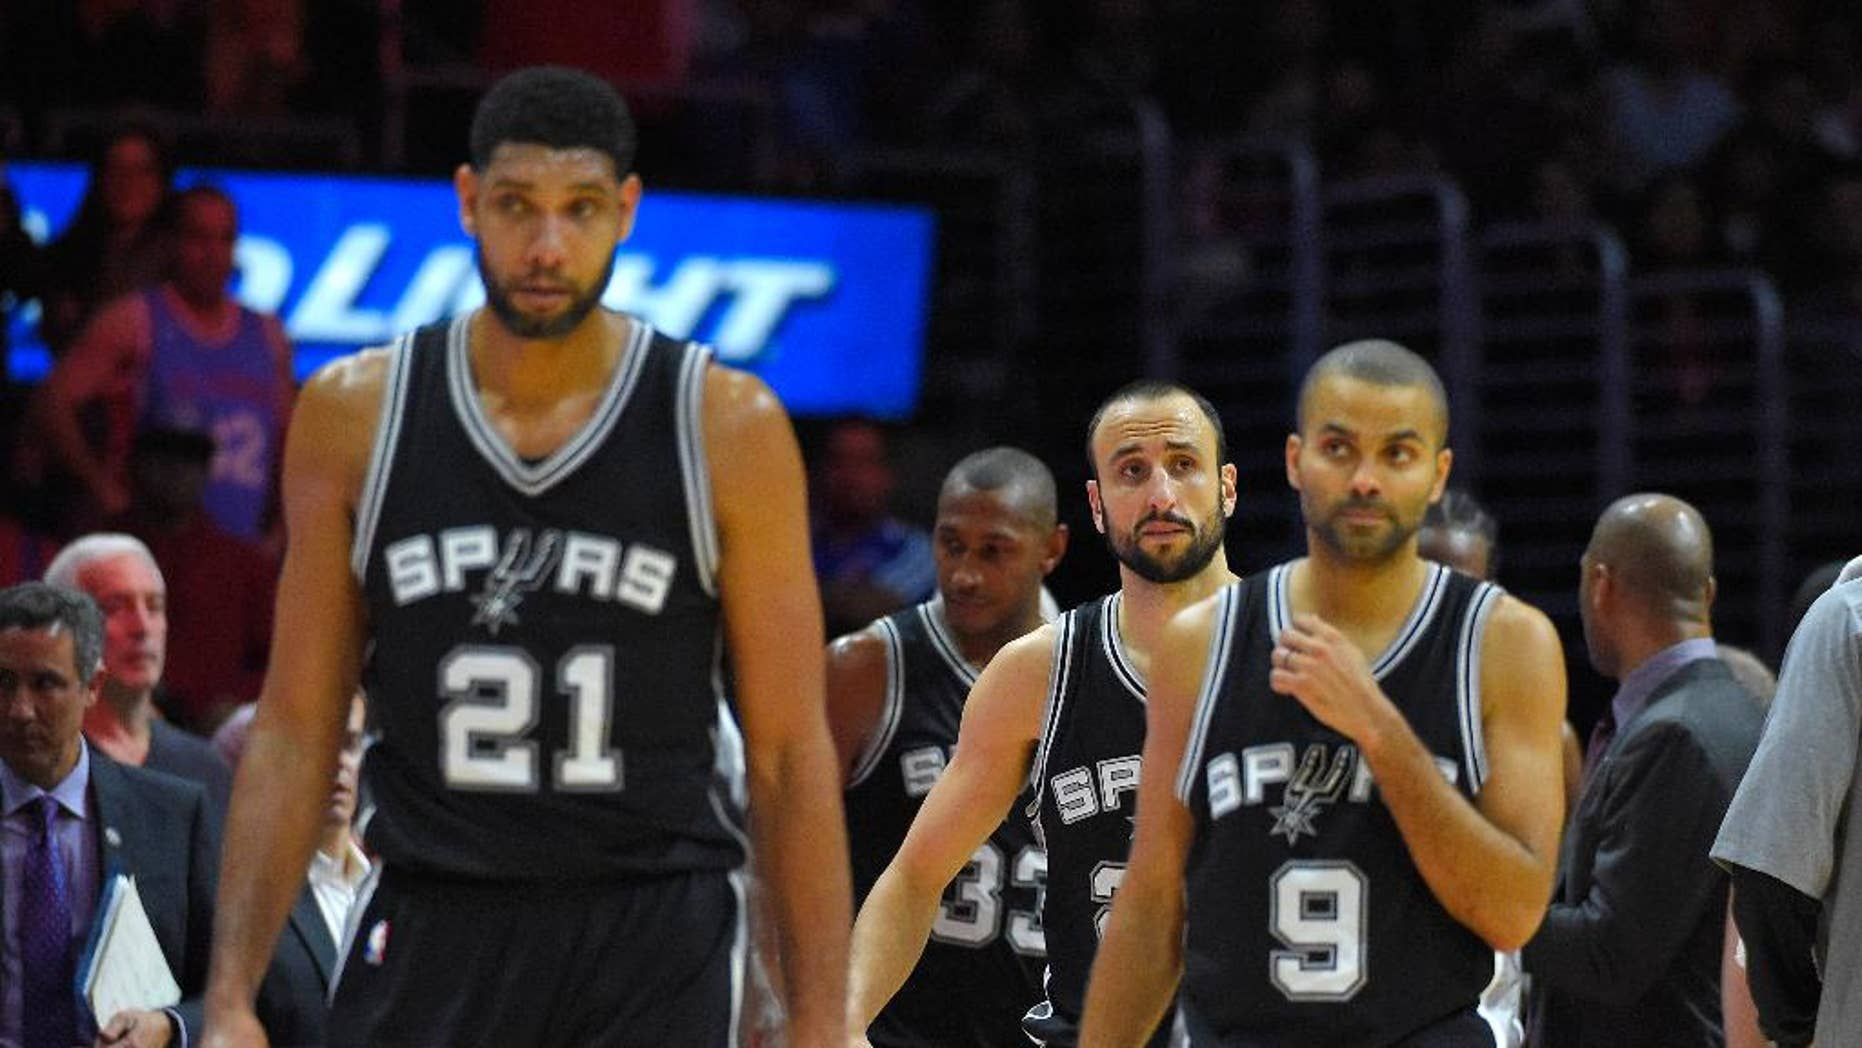 San Antonio Spurs forward Tim Duncan, left, guard Manu Ginobili, center, of Argentina, and guard Tony Parker, of France, look on during the second half of an NBA basketball game against the Los Angeles Clippers, Monday, Nov. 10, 2014, in Los Angeles.  The Spurs won 89-85. (AP Photo/Mark J. Terrill)